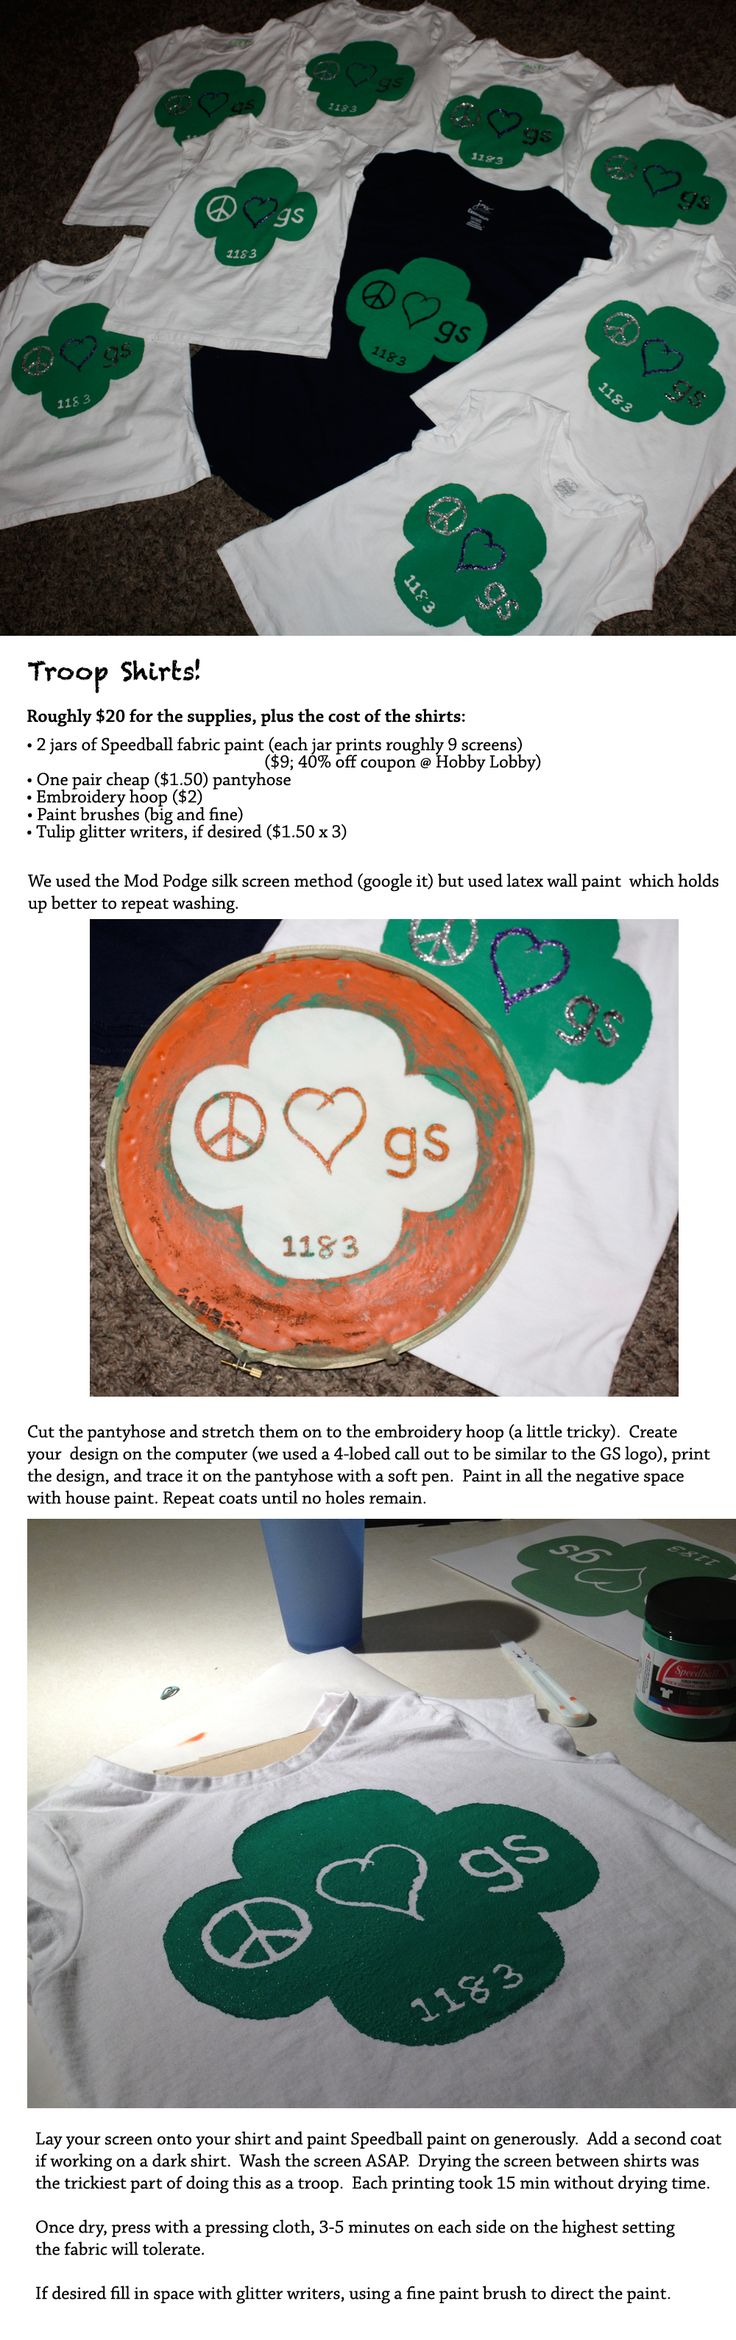 "Girl Scout handmade troop shirts, DIY ""mod podge"" silk screening done with latex house paint."